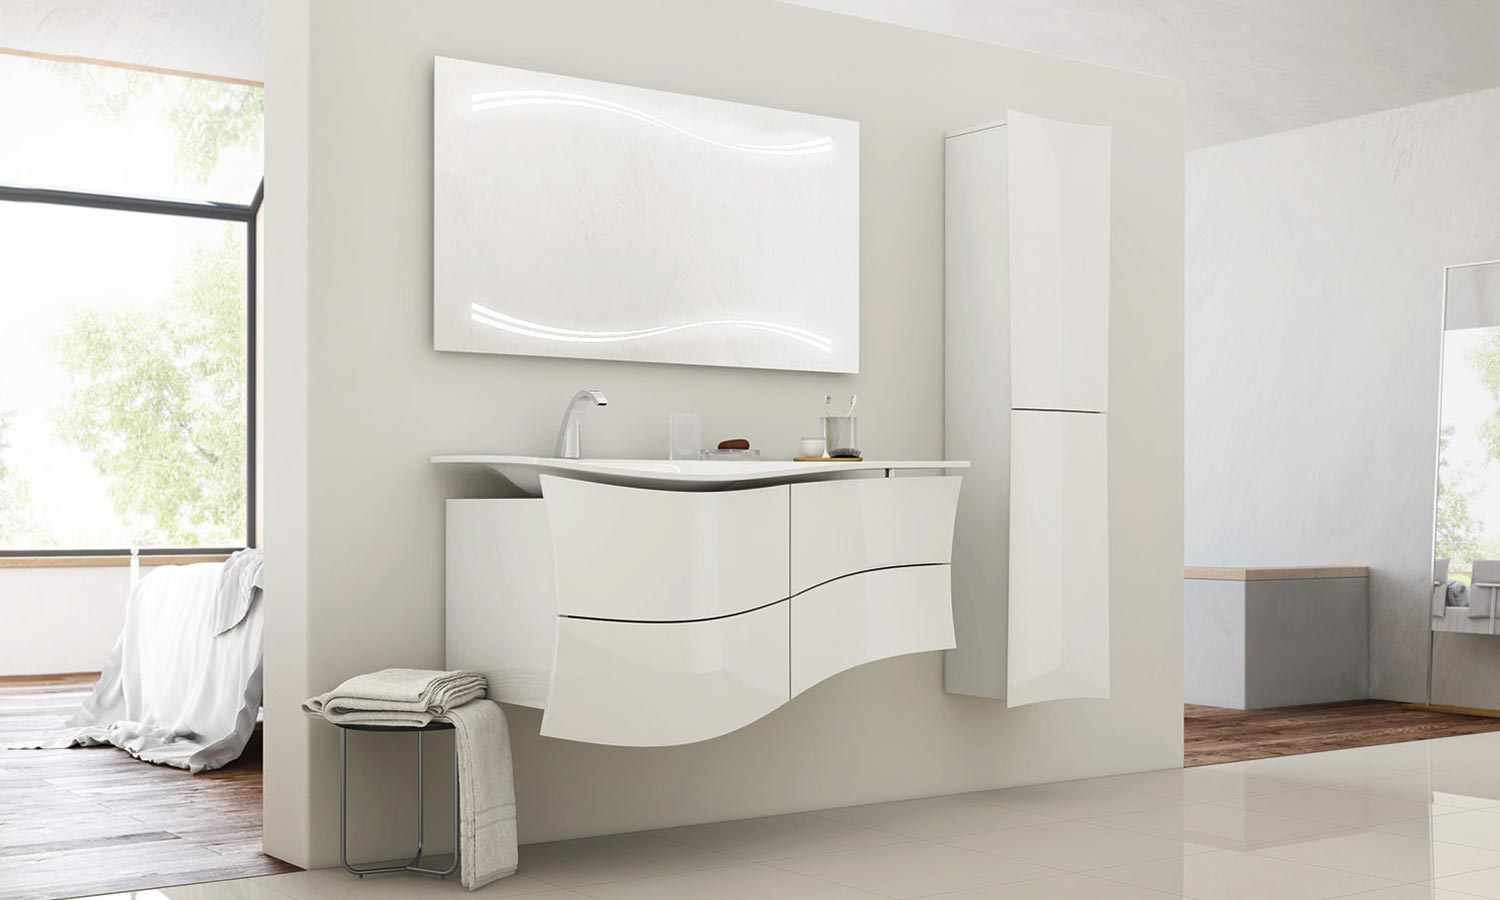 Meuble salle de bain leroy merlin for Salle de bain leroy merlin photo